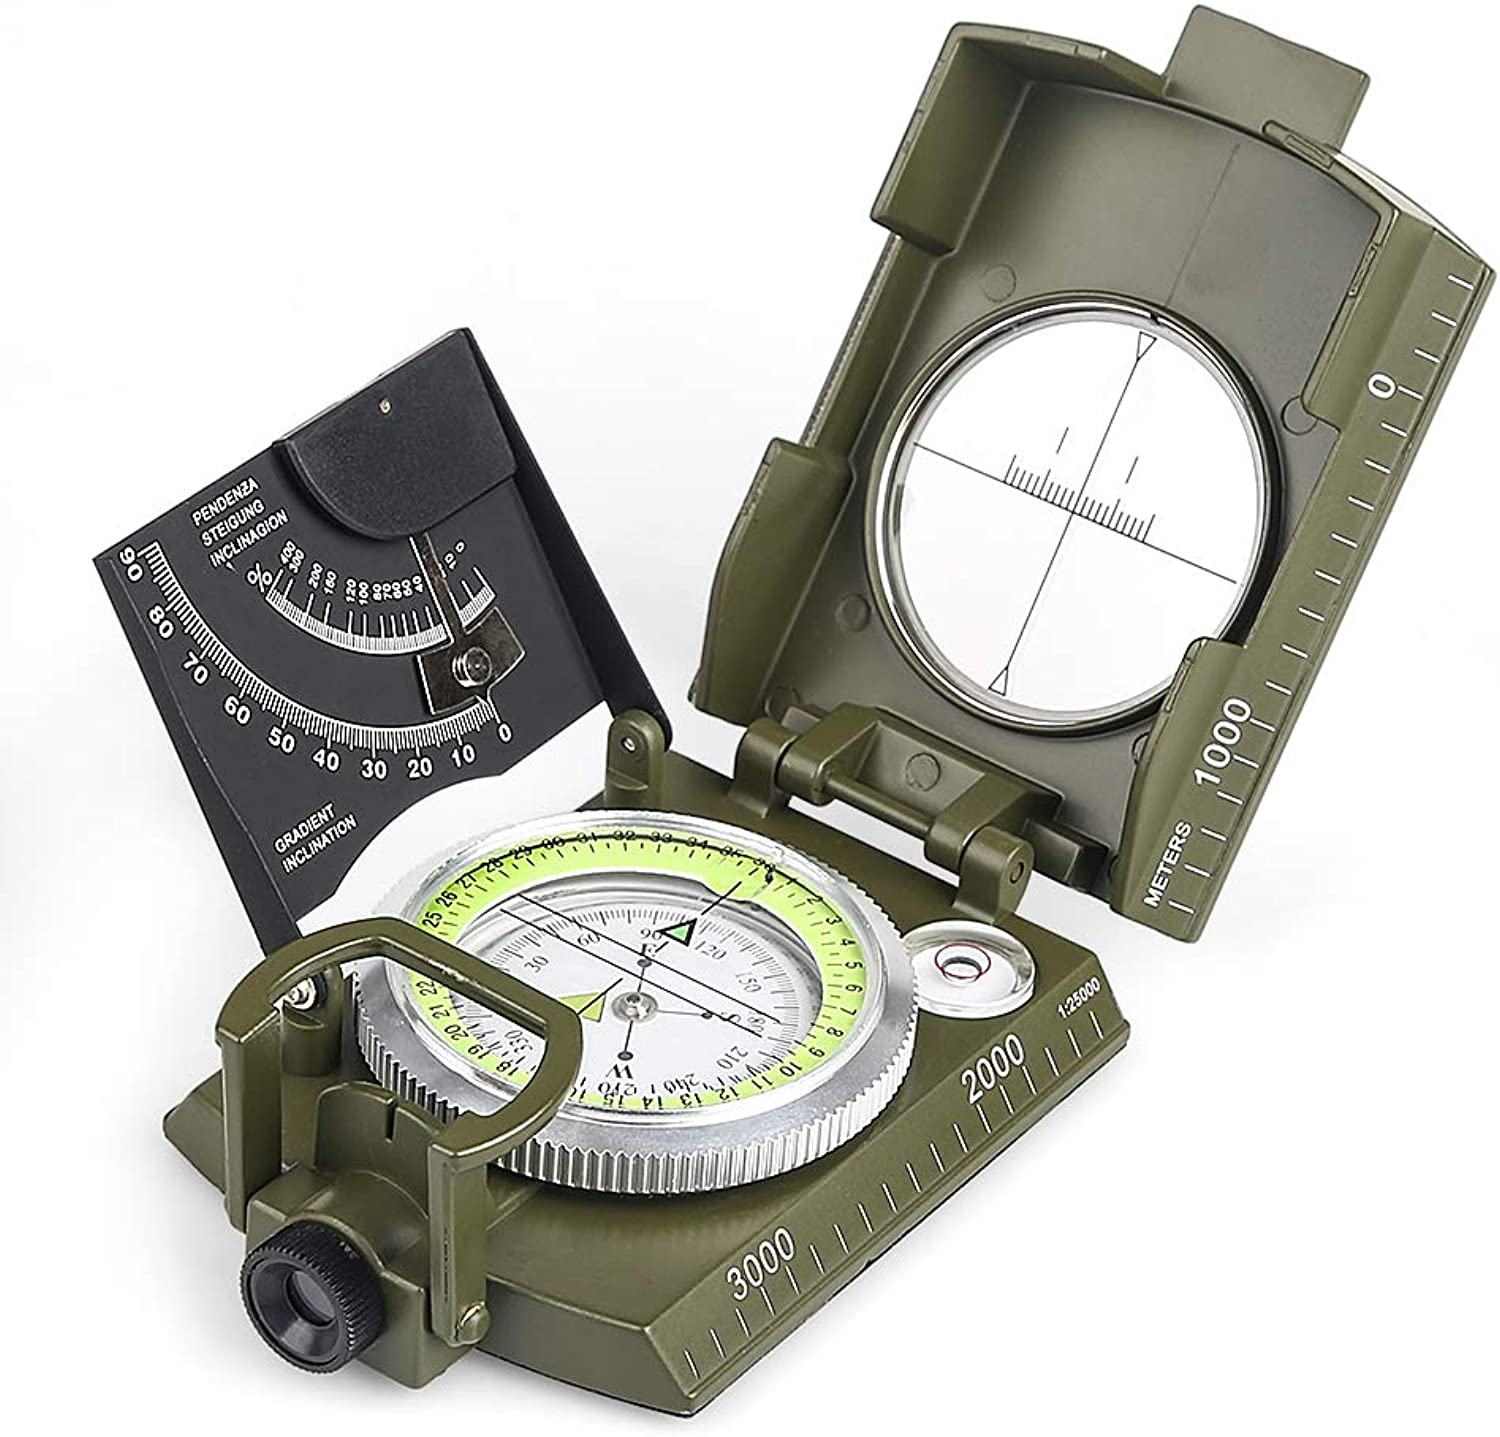 BIJIA Professional Multifunctional Compass All Metal Military Waterproof High Accuracy Compass with Inclinometer and Bubble Level for Hiking Climbing Boating Exploring Hunting Geology